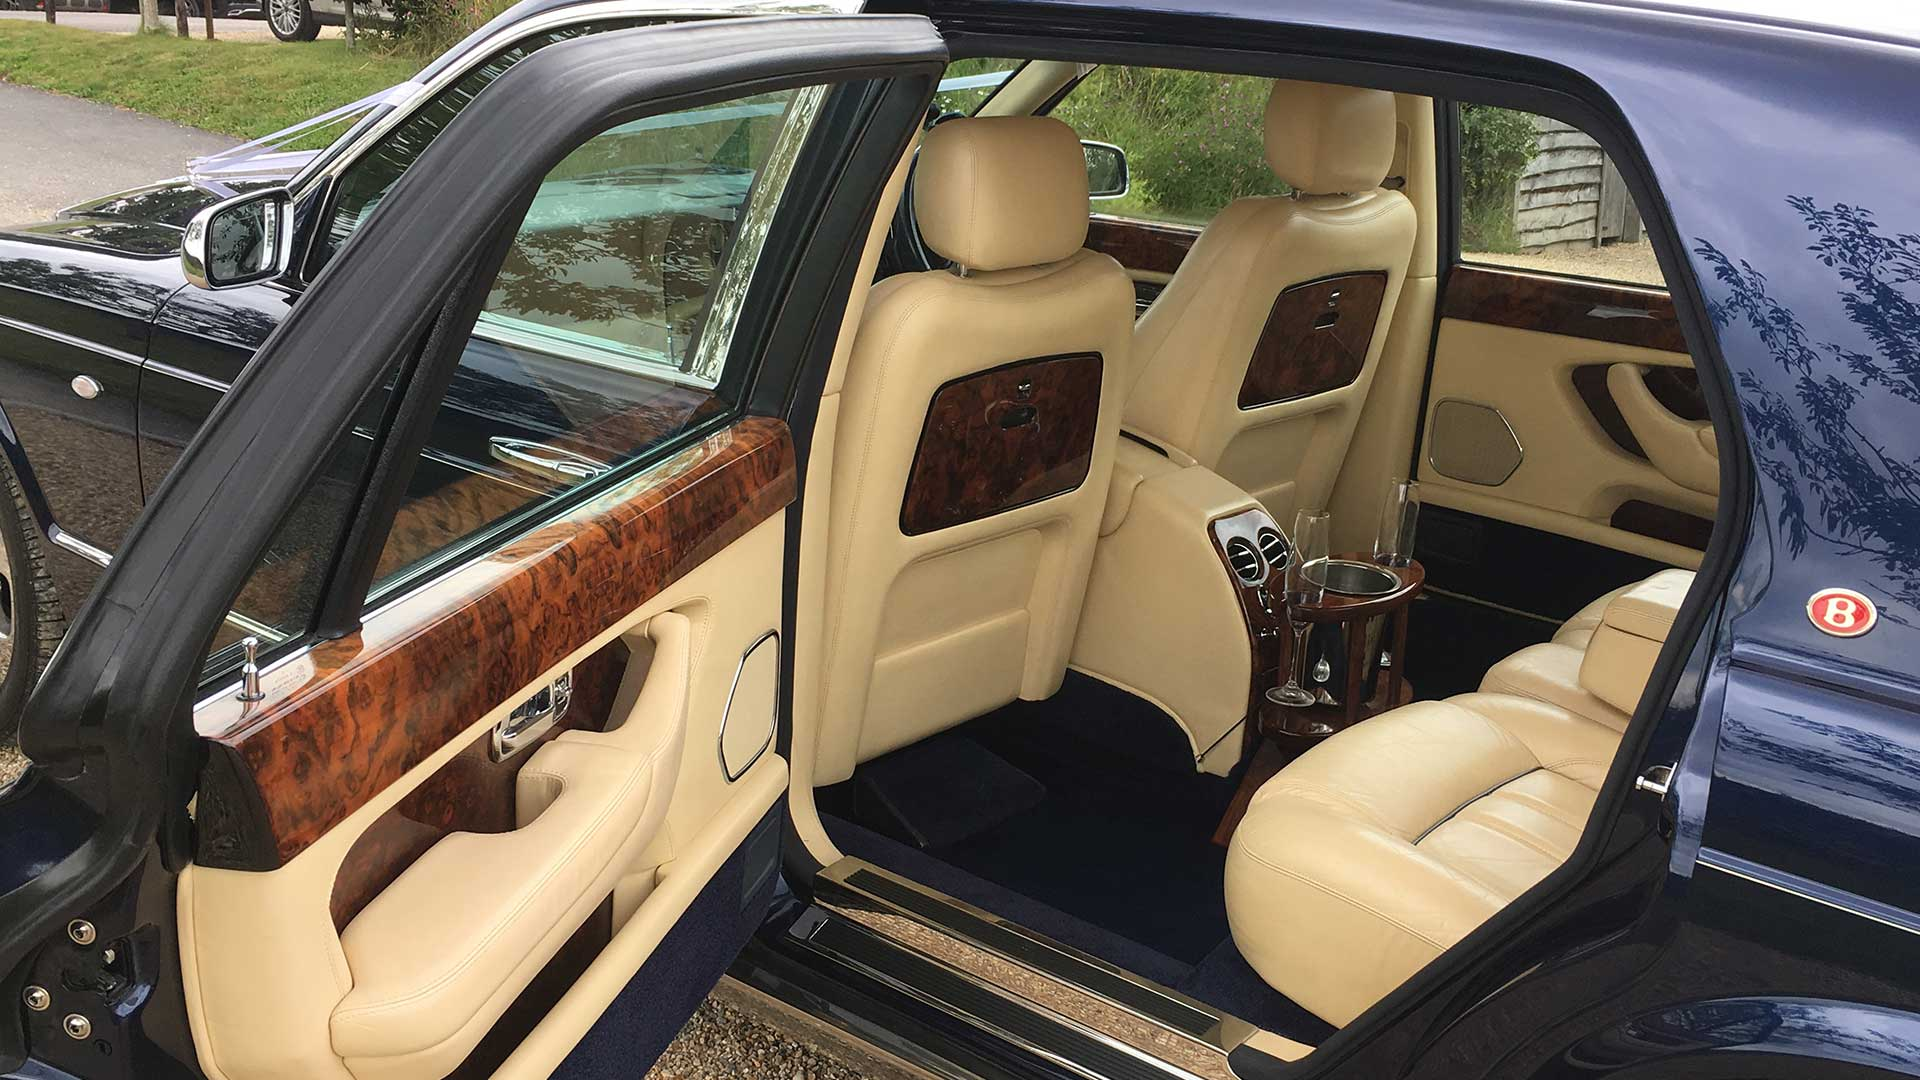 The inside of the Bentley Arnage wedding car in Blue